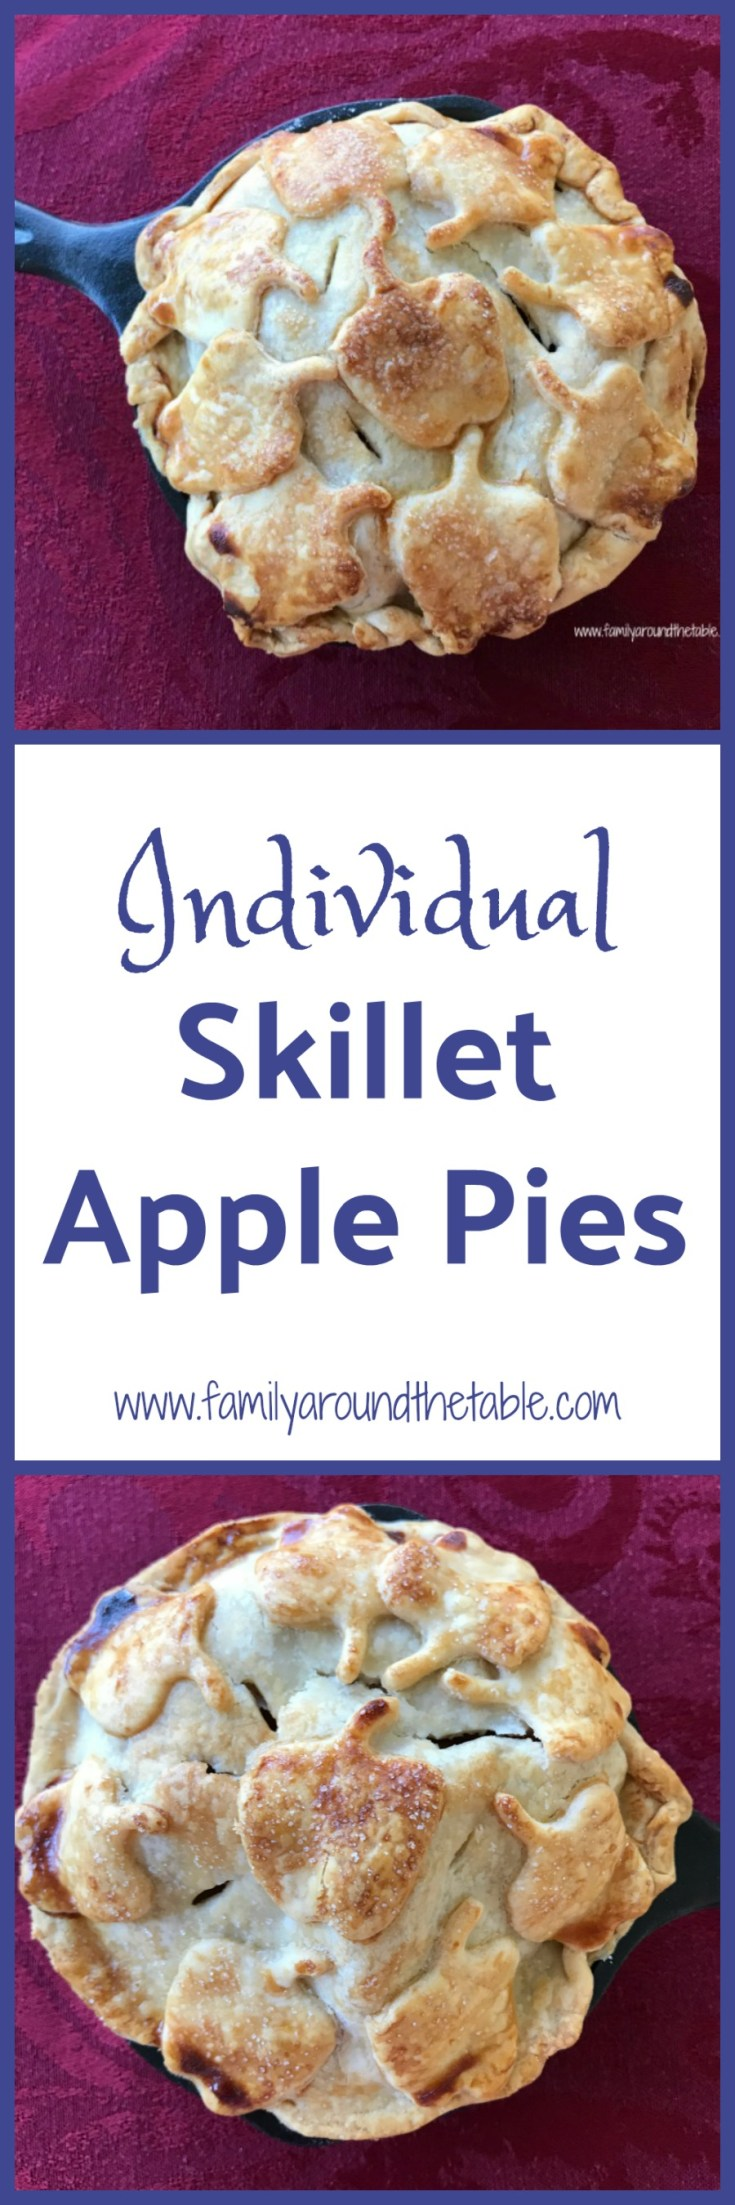 Everyone loves having their own dessert. Individual skillet apple pies are the perfect fall dessert.